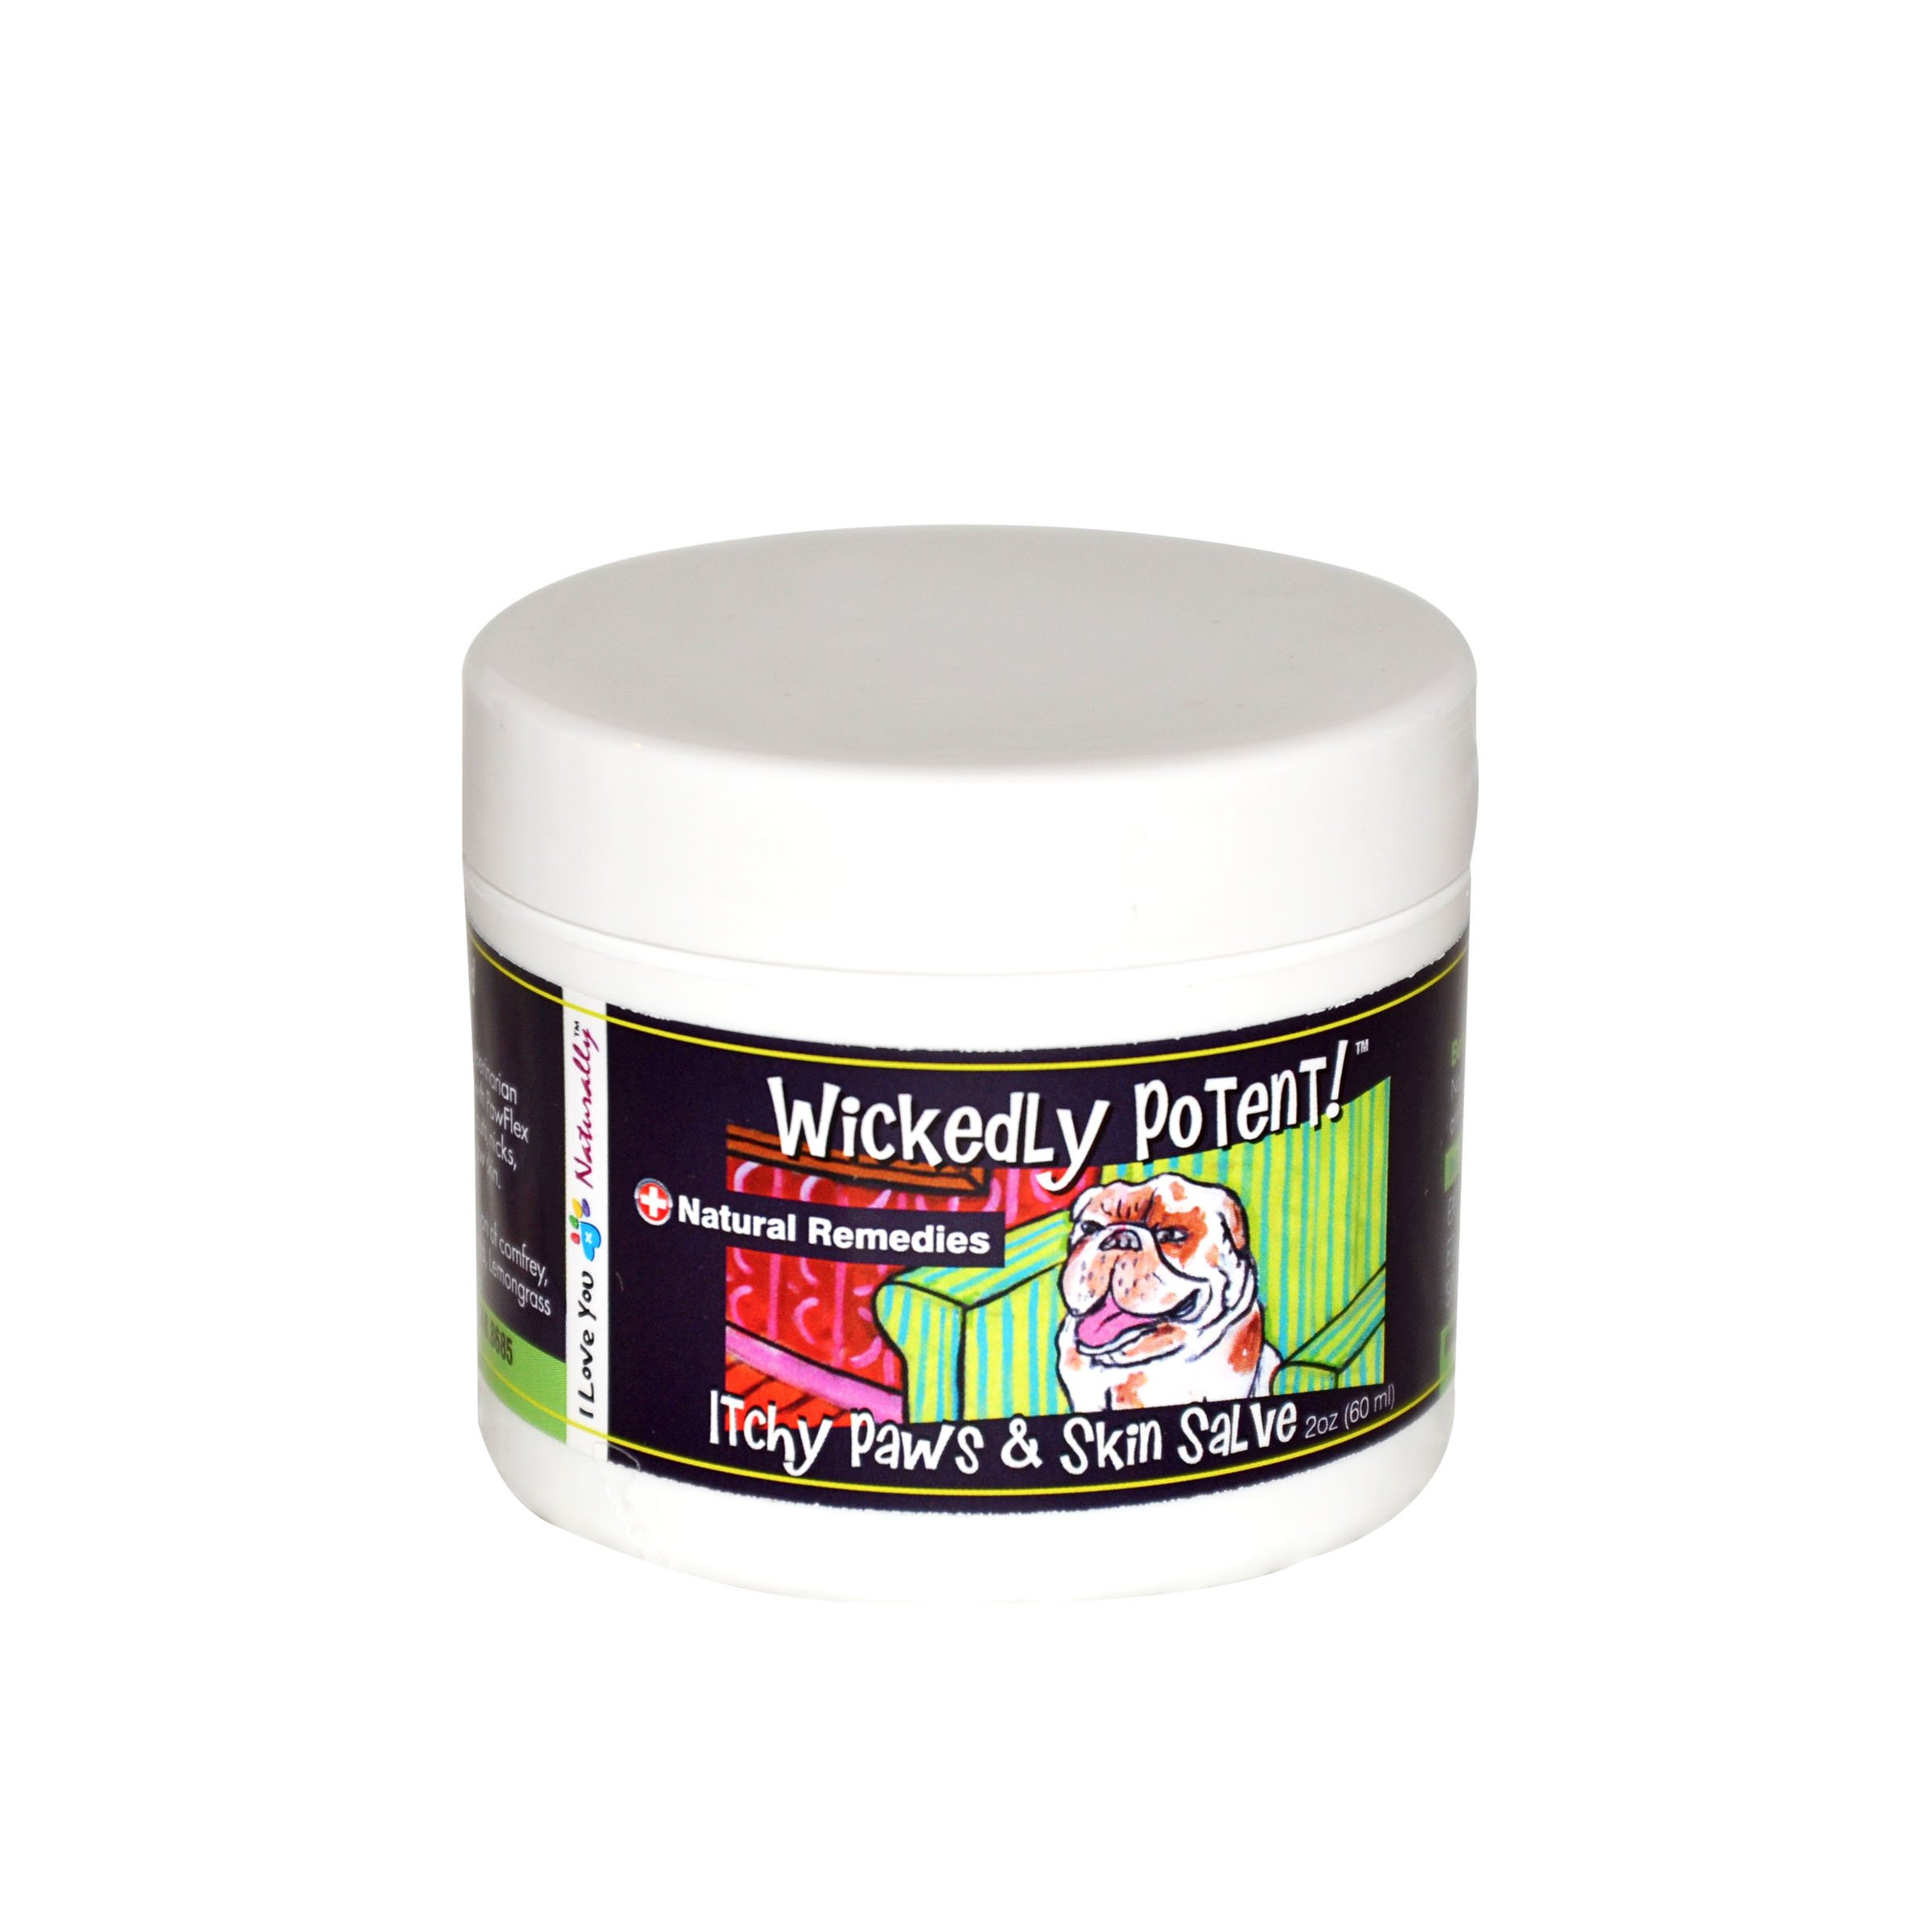 PawFlex Wickedly Potent All Natural Dog and Pet ITCHY PAWS & SKIN Salve First Aid Itch Relief Herbal Balm Holistic Healing Remedy Allergies, Hot Spots, and Fungal Infections - 1 oz (2 oz)